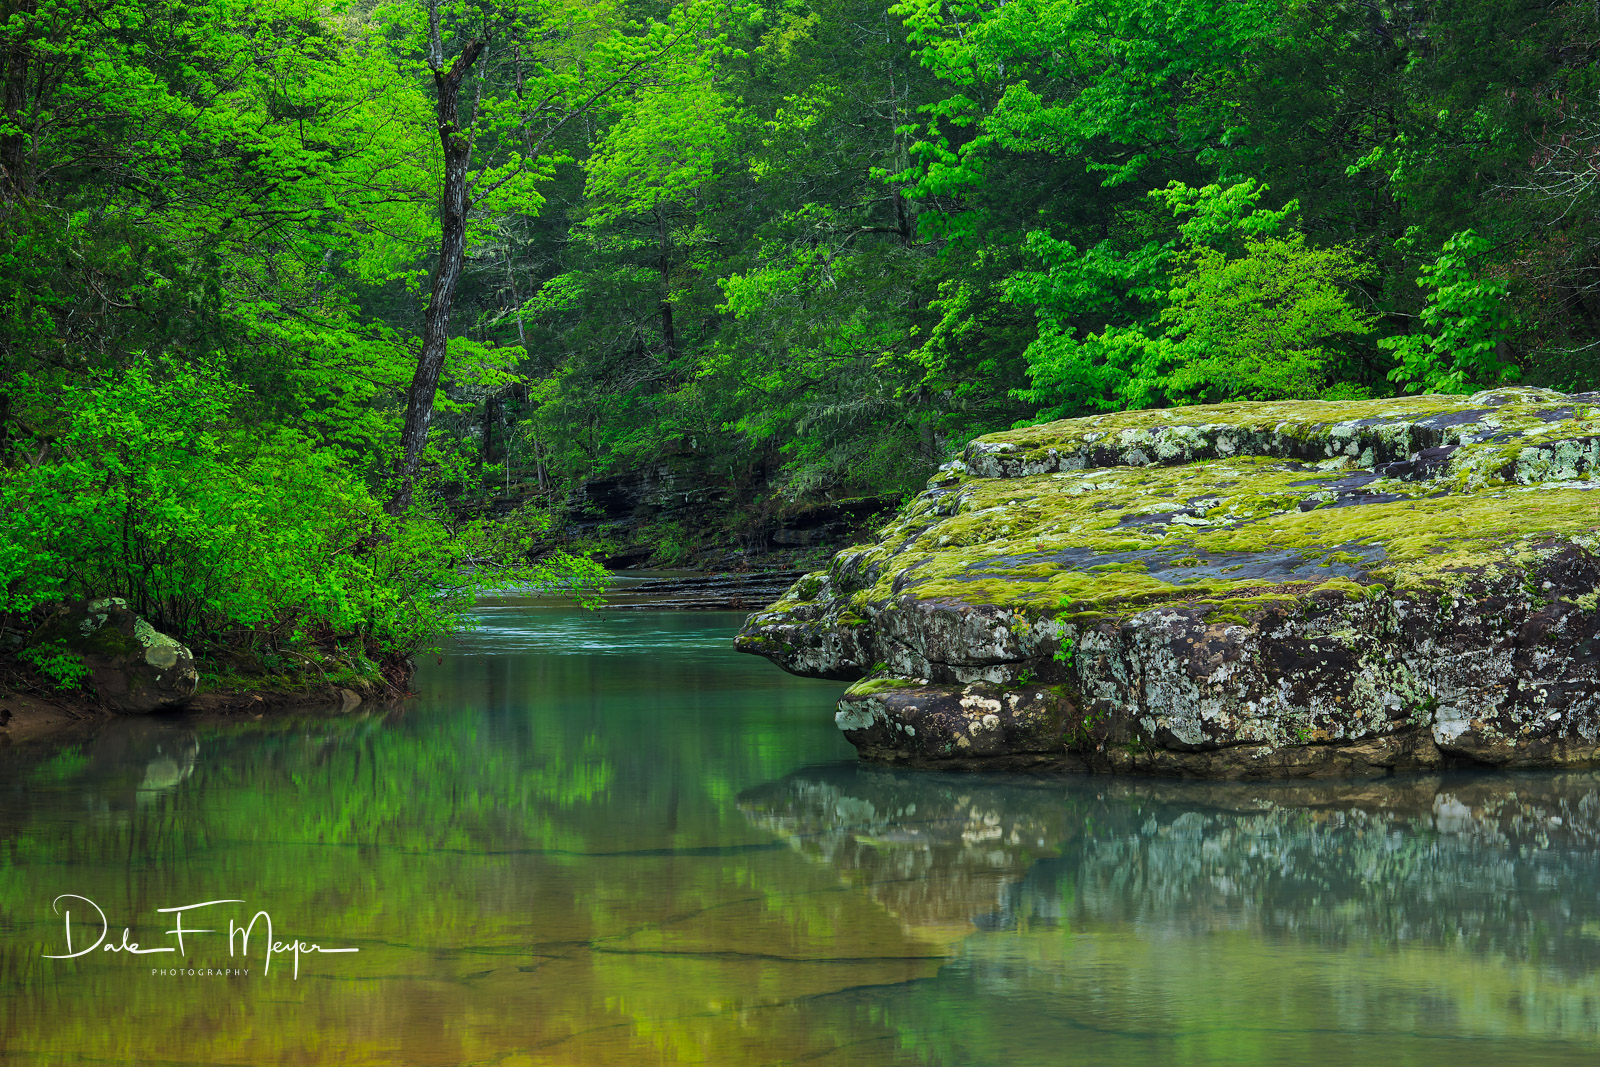 Richland Creek Arkansas,rivers streams and waterfalls gallerie,spring 2015, photo